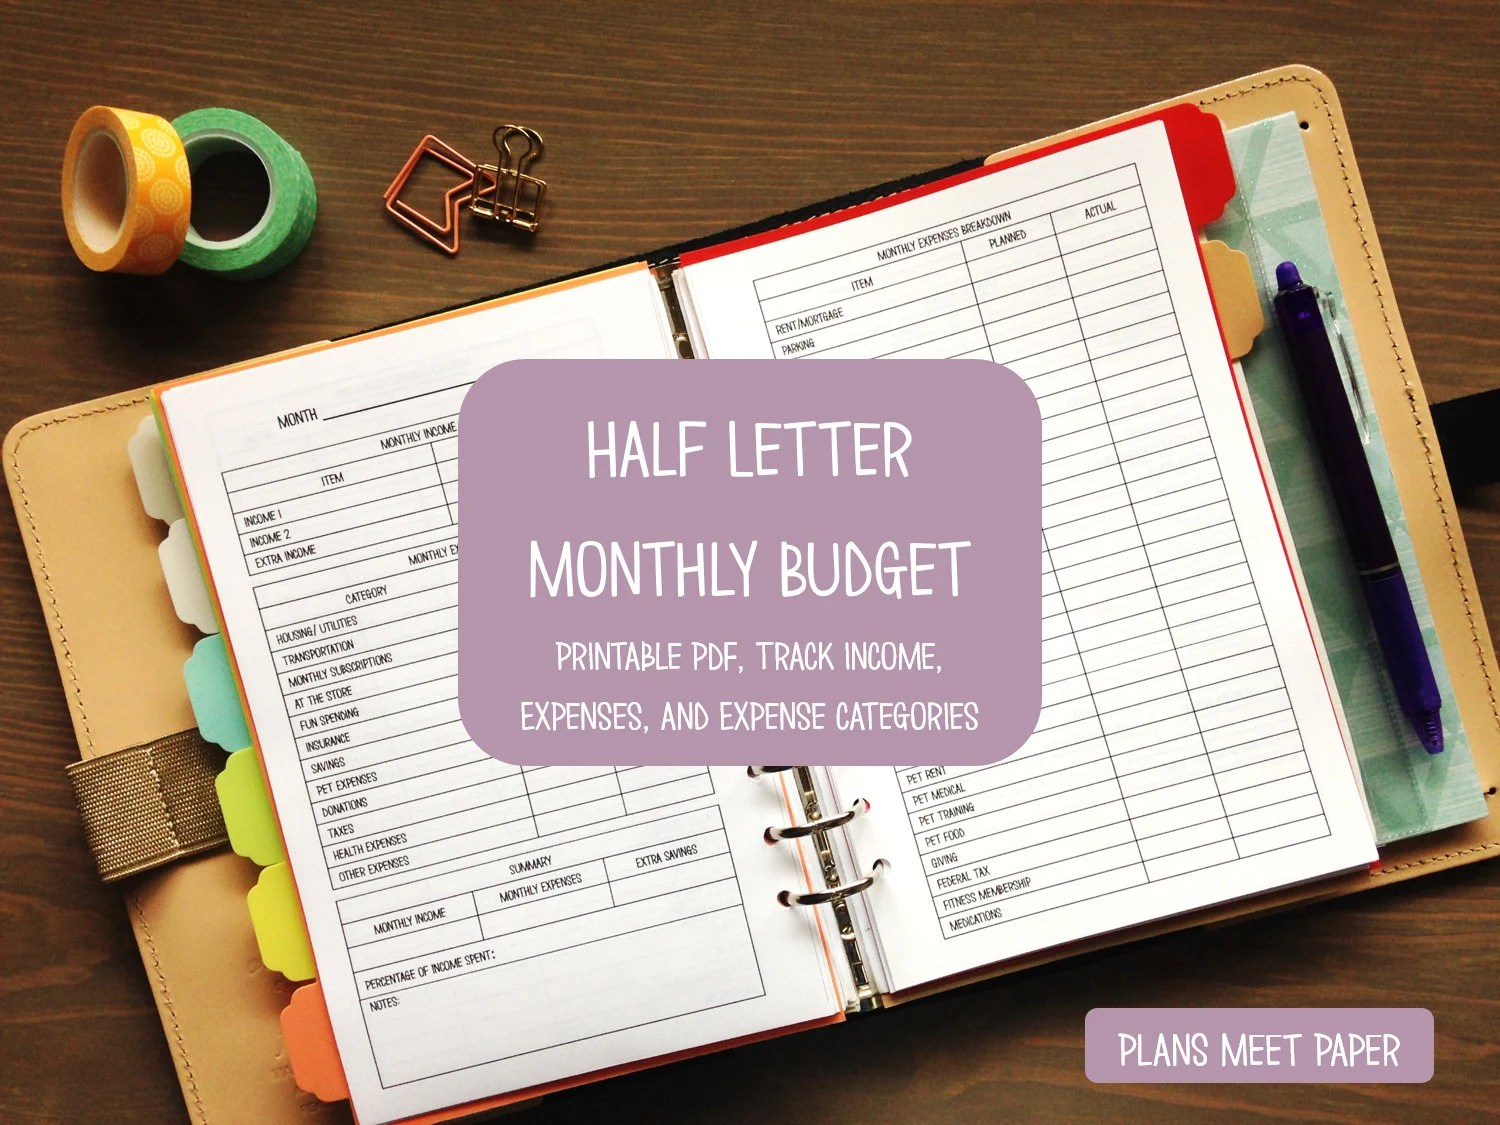 Printable Half Letter Monthly Budget